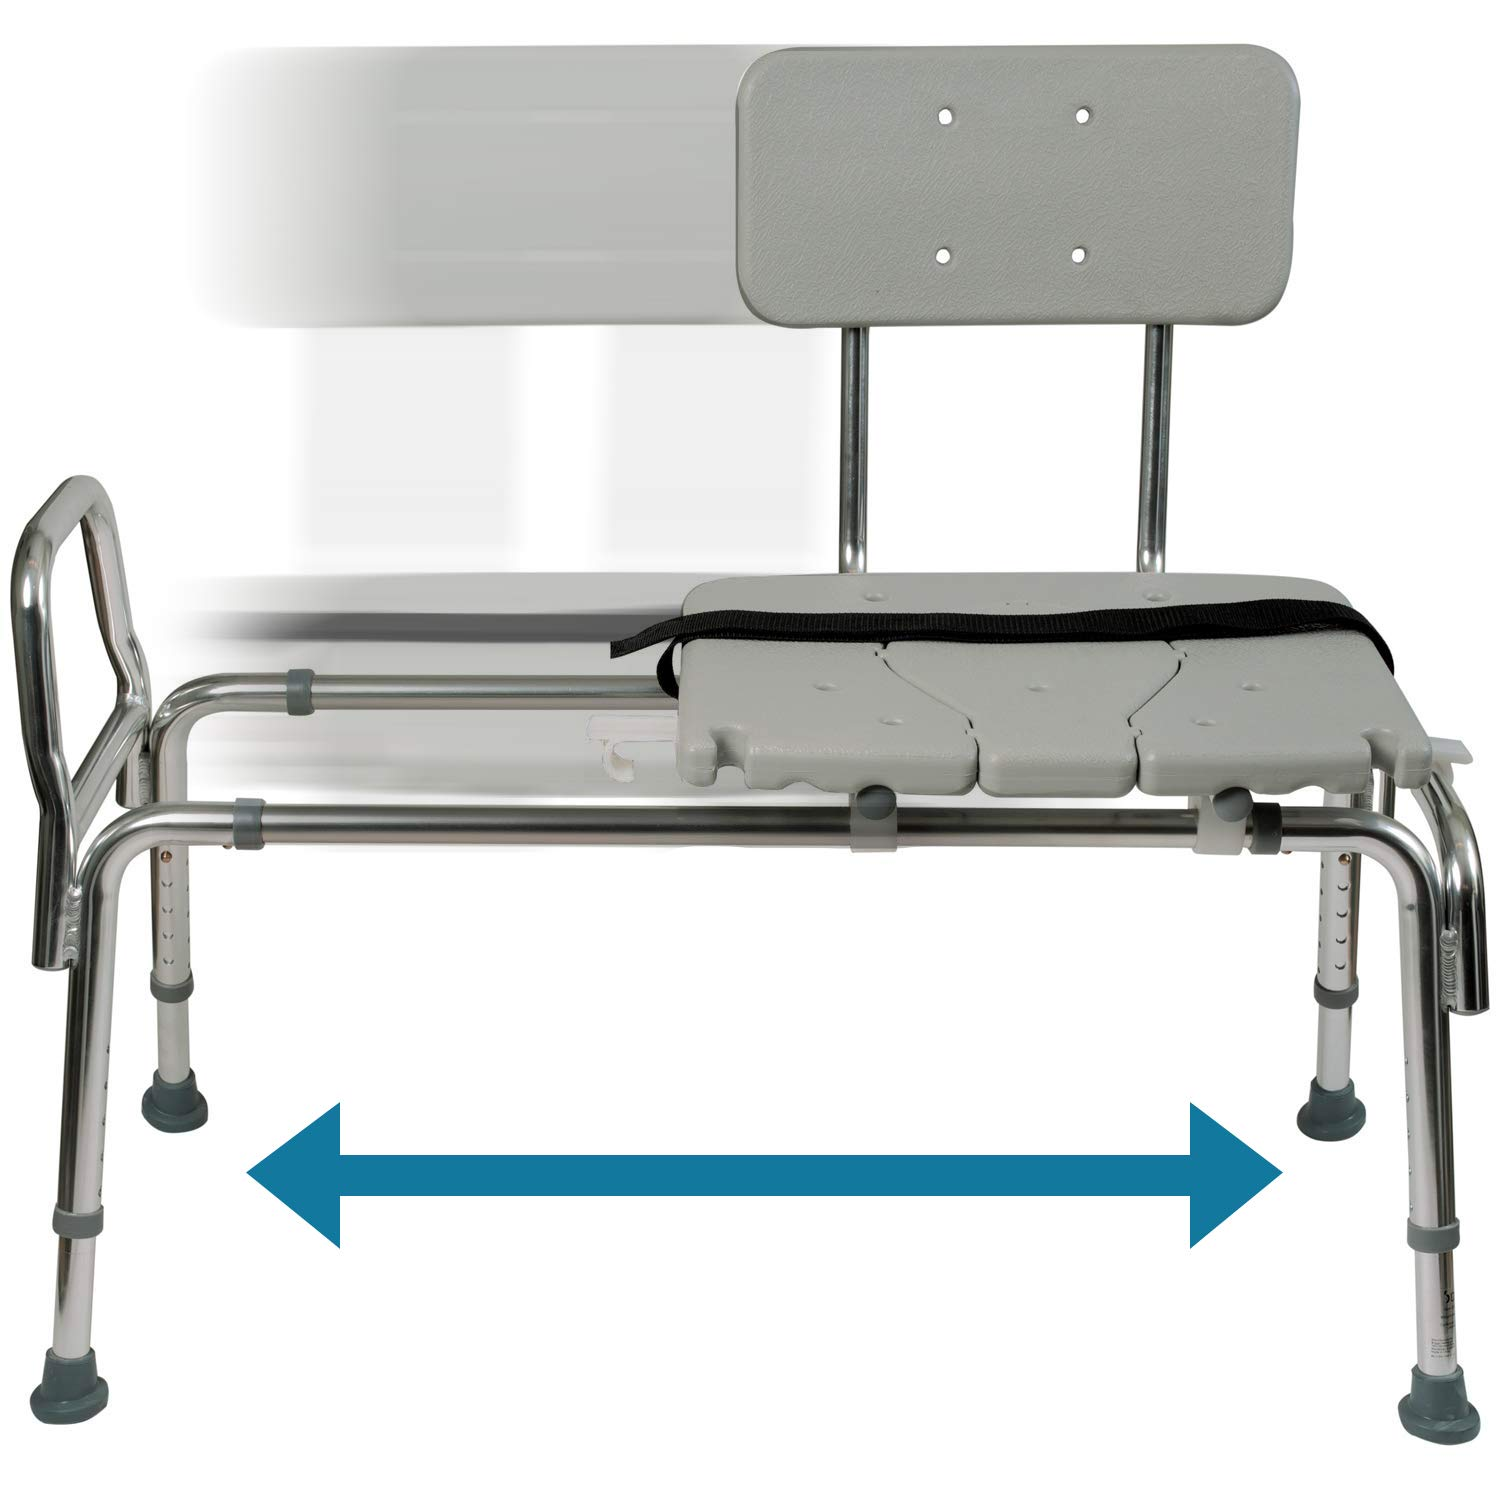 Outstanding Tub Transfer Bench And Sliding Shower Chair Made Of Heavy Duty Non Slip Aluminum Body And Plastic Seat With Adjustable Seat Height And Cut Out Access Ncnpc Chair Design For Home Ncnpcorg